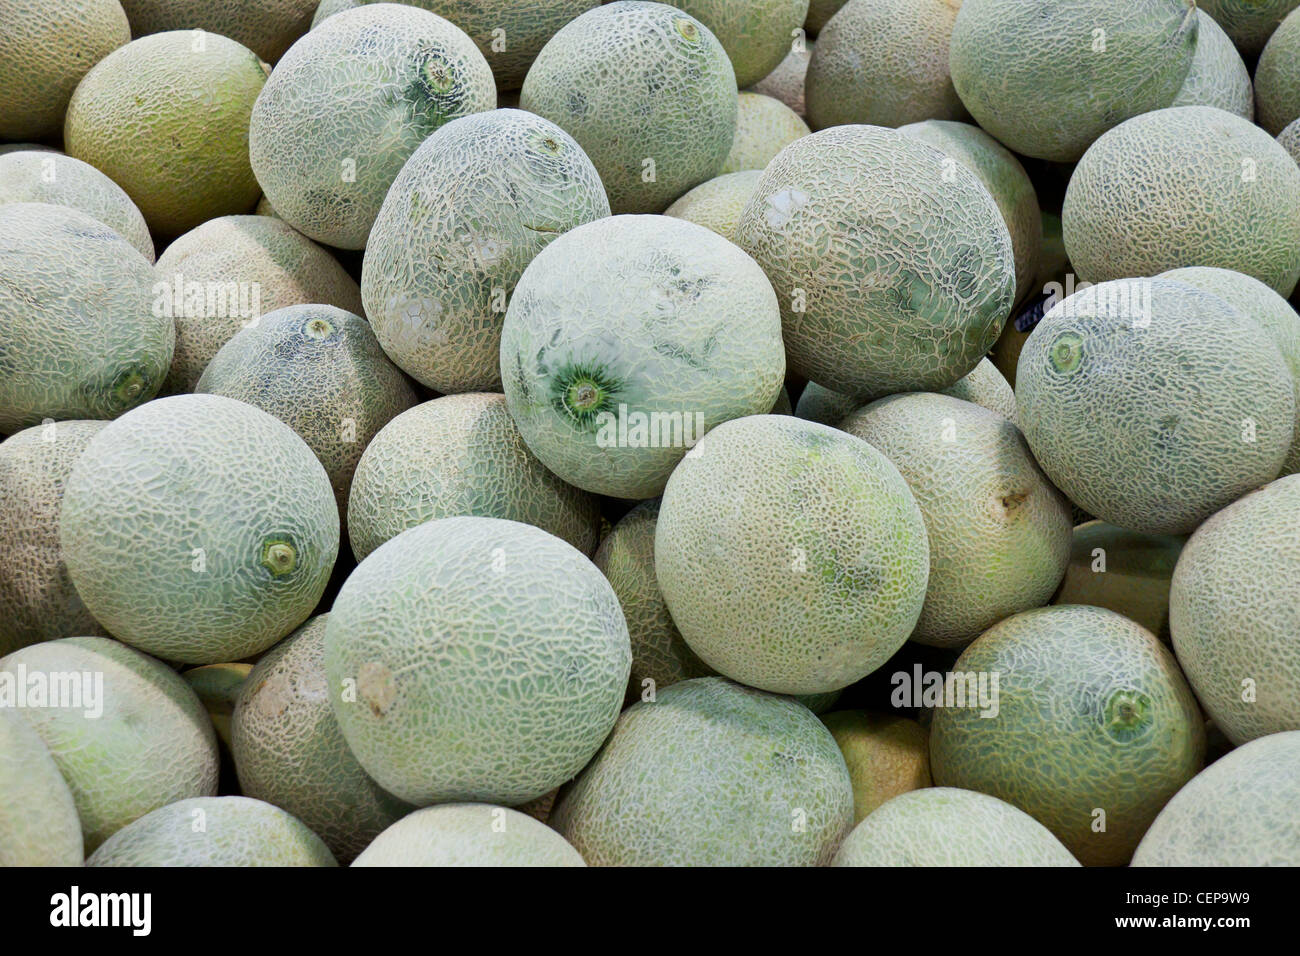 Honeydews raw background - Stock Image